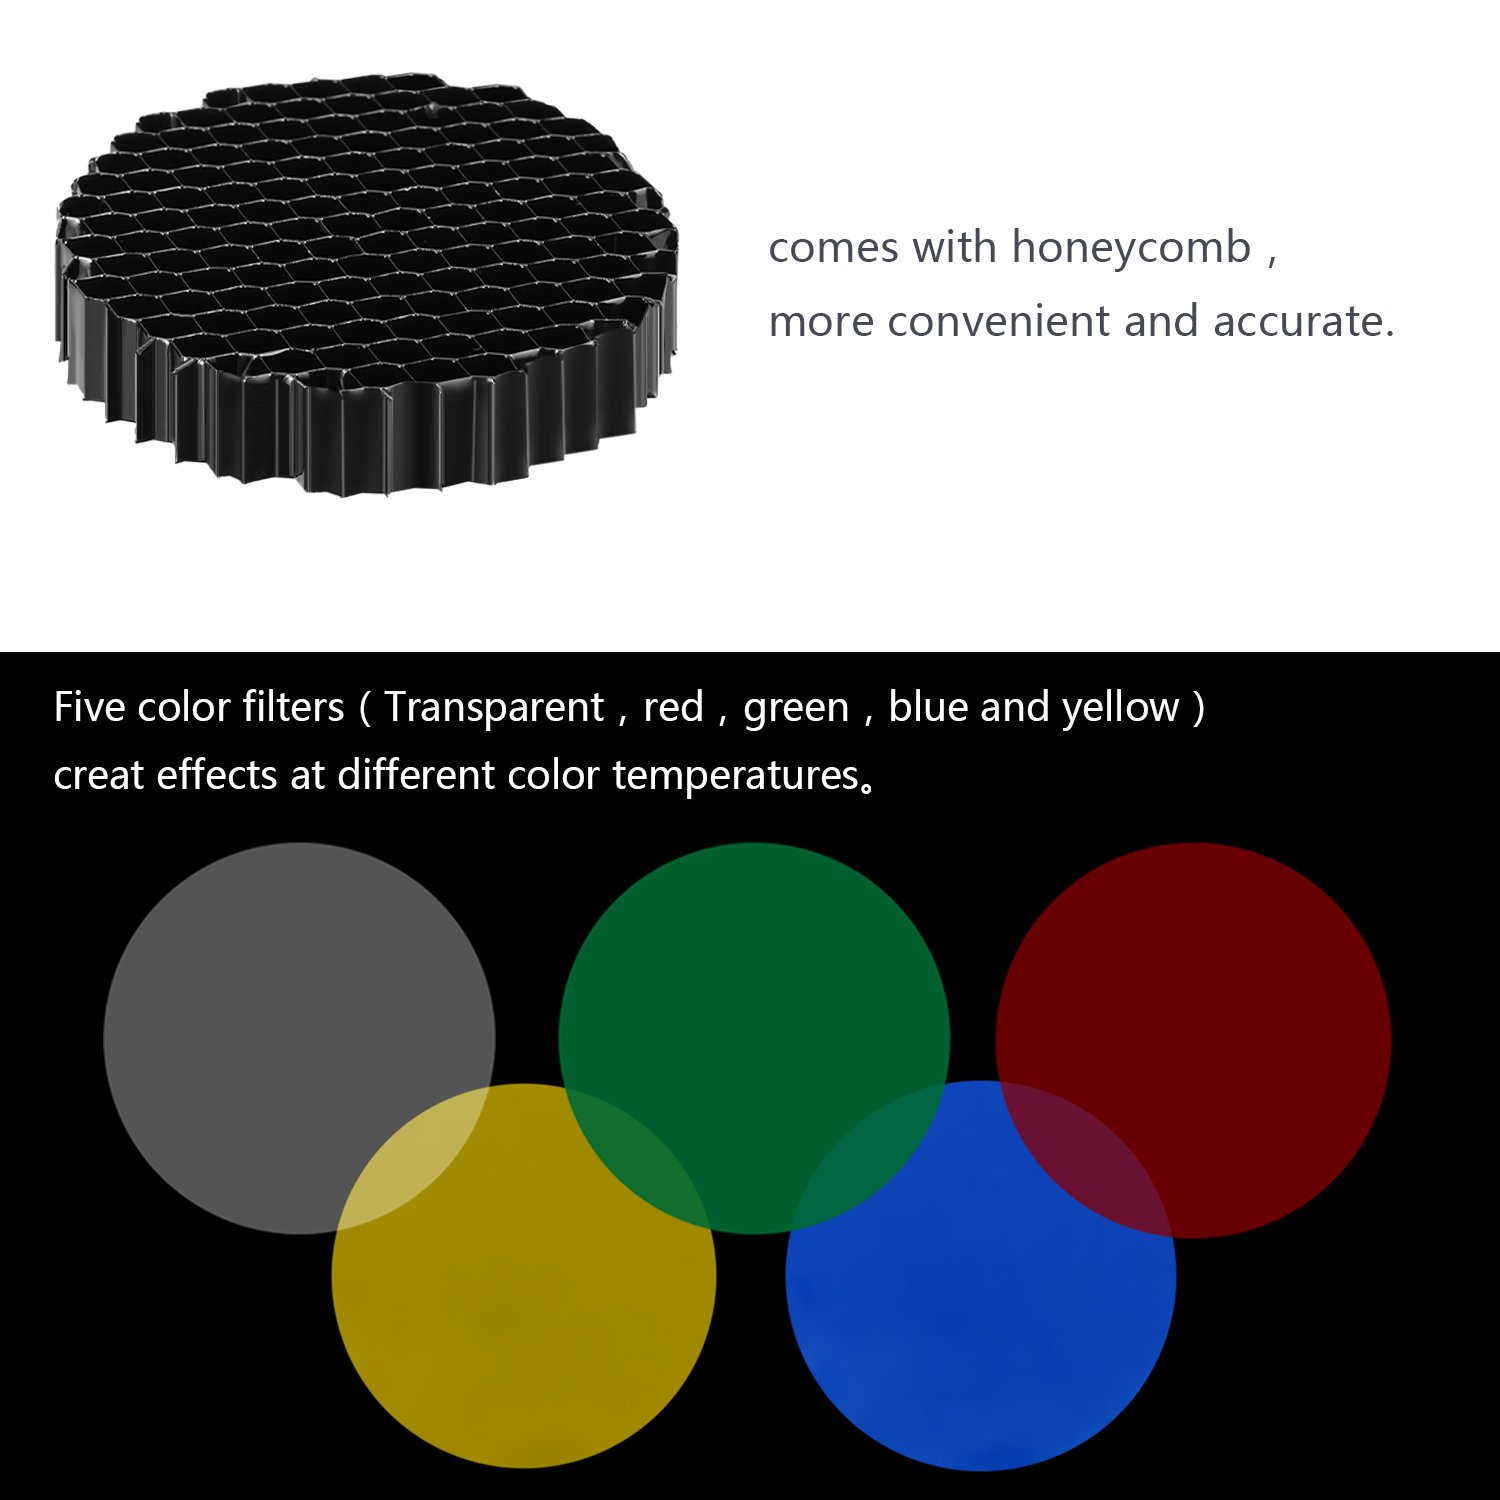 Neewer Aluminium Alloy Conical Snoot Kit with Honeycomb Grid and 5 Pieces Color Gel Filters for Canon Nikon TT560 NW561 NW562 NW565 NW620 NW630 NW680 NW670 750II NW910 NW880 Flash Speedlites by Neewer (Image #5)